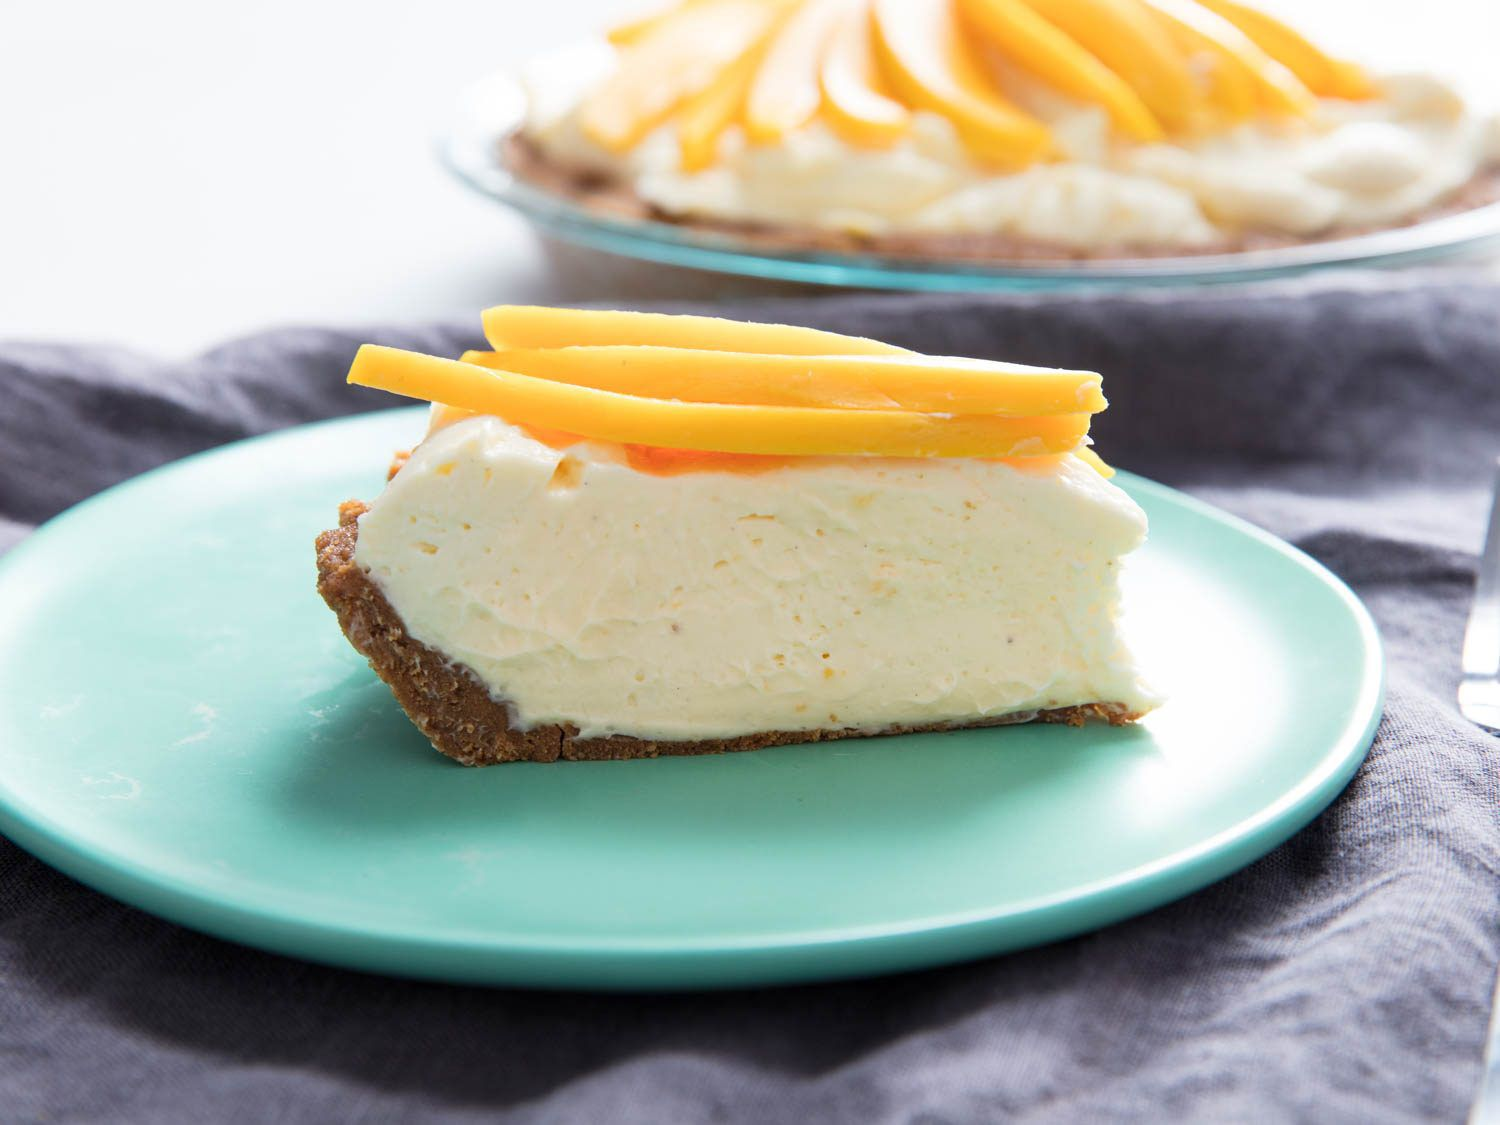 slice of cheesecake with mango slices on top